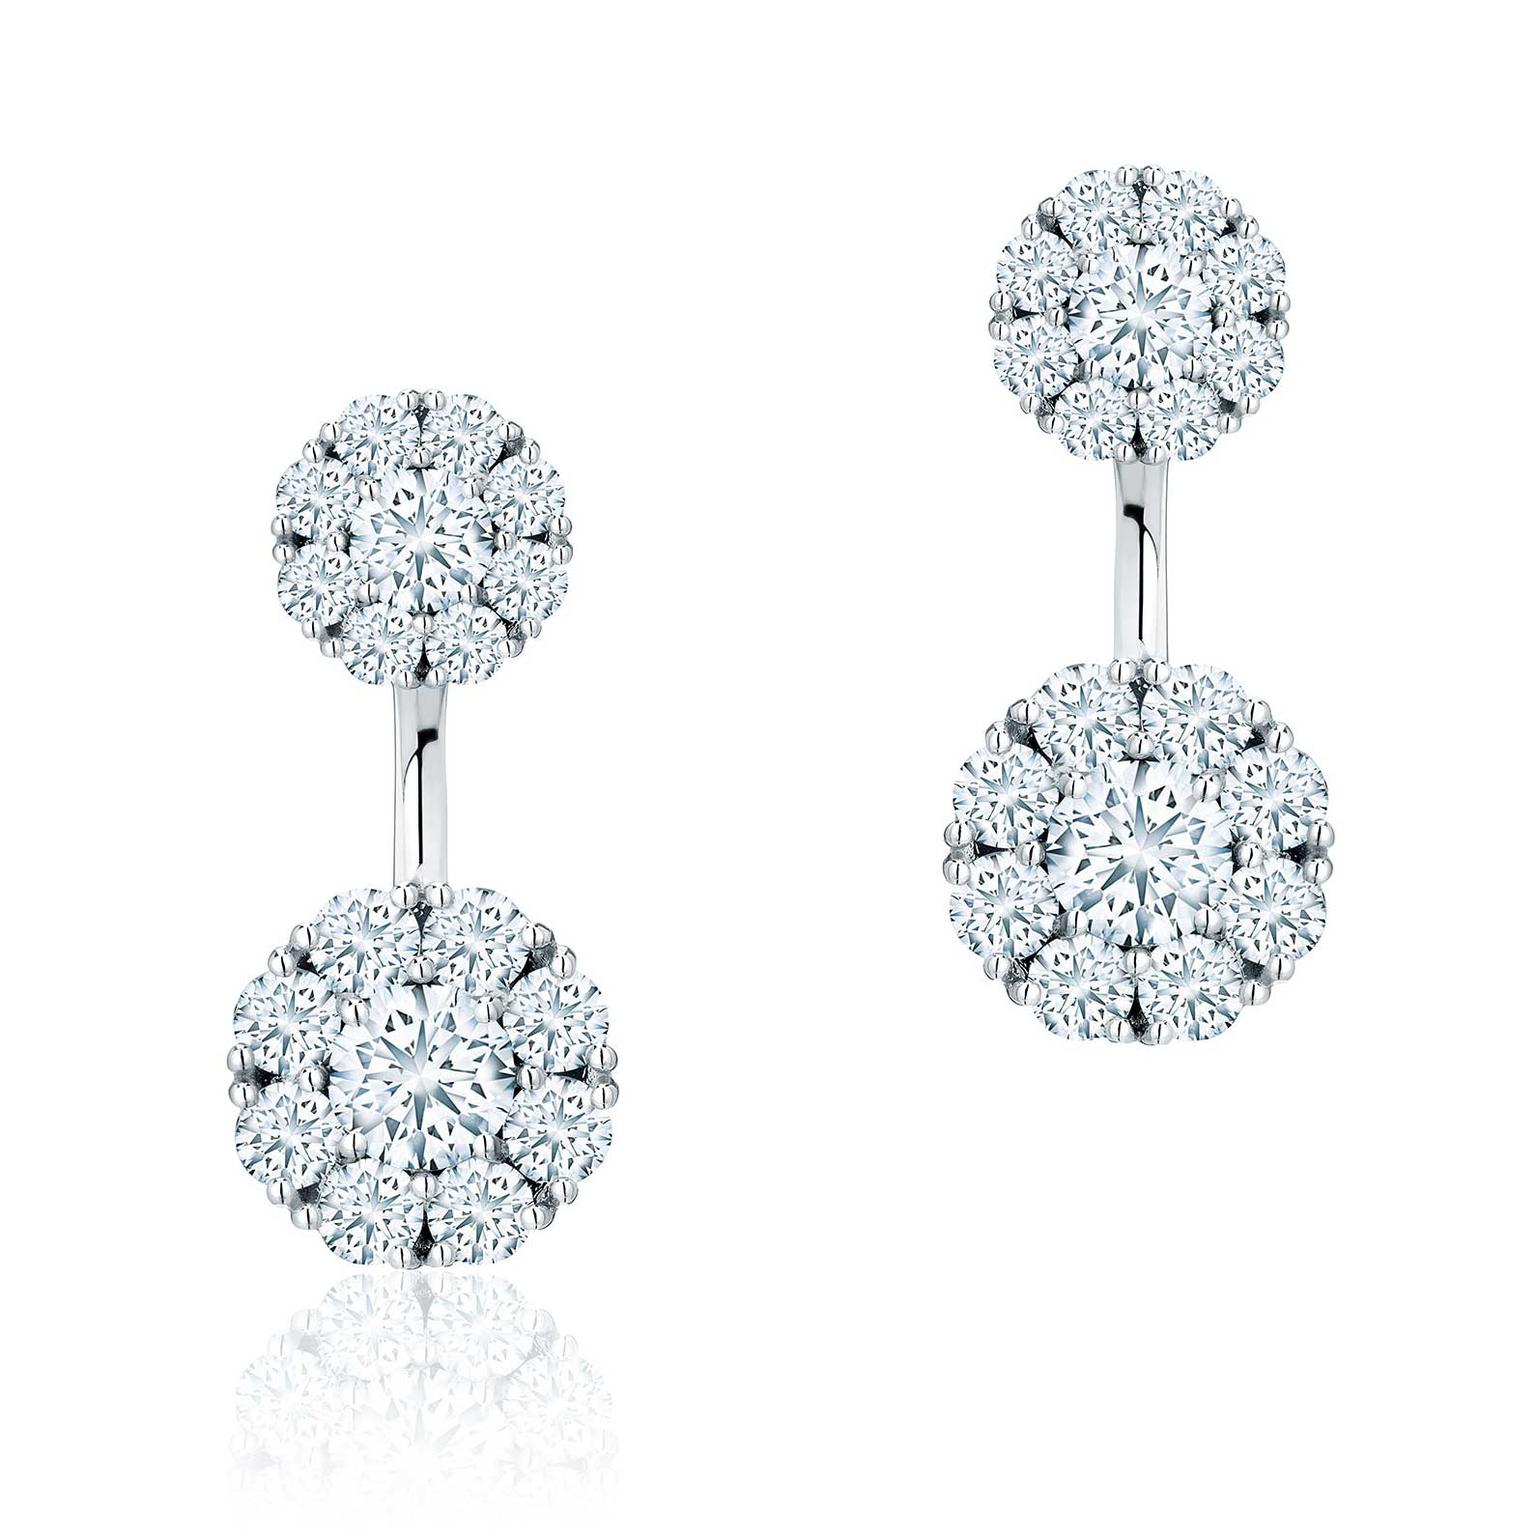 Birks Snowflake round diamond jacket earrings as worn by Meghan Markle Price £5250